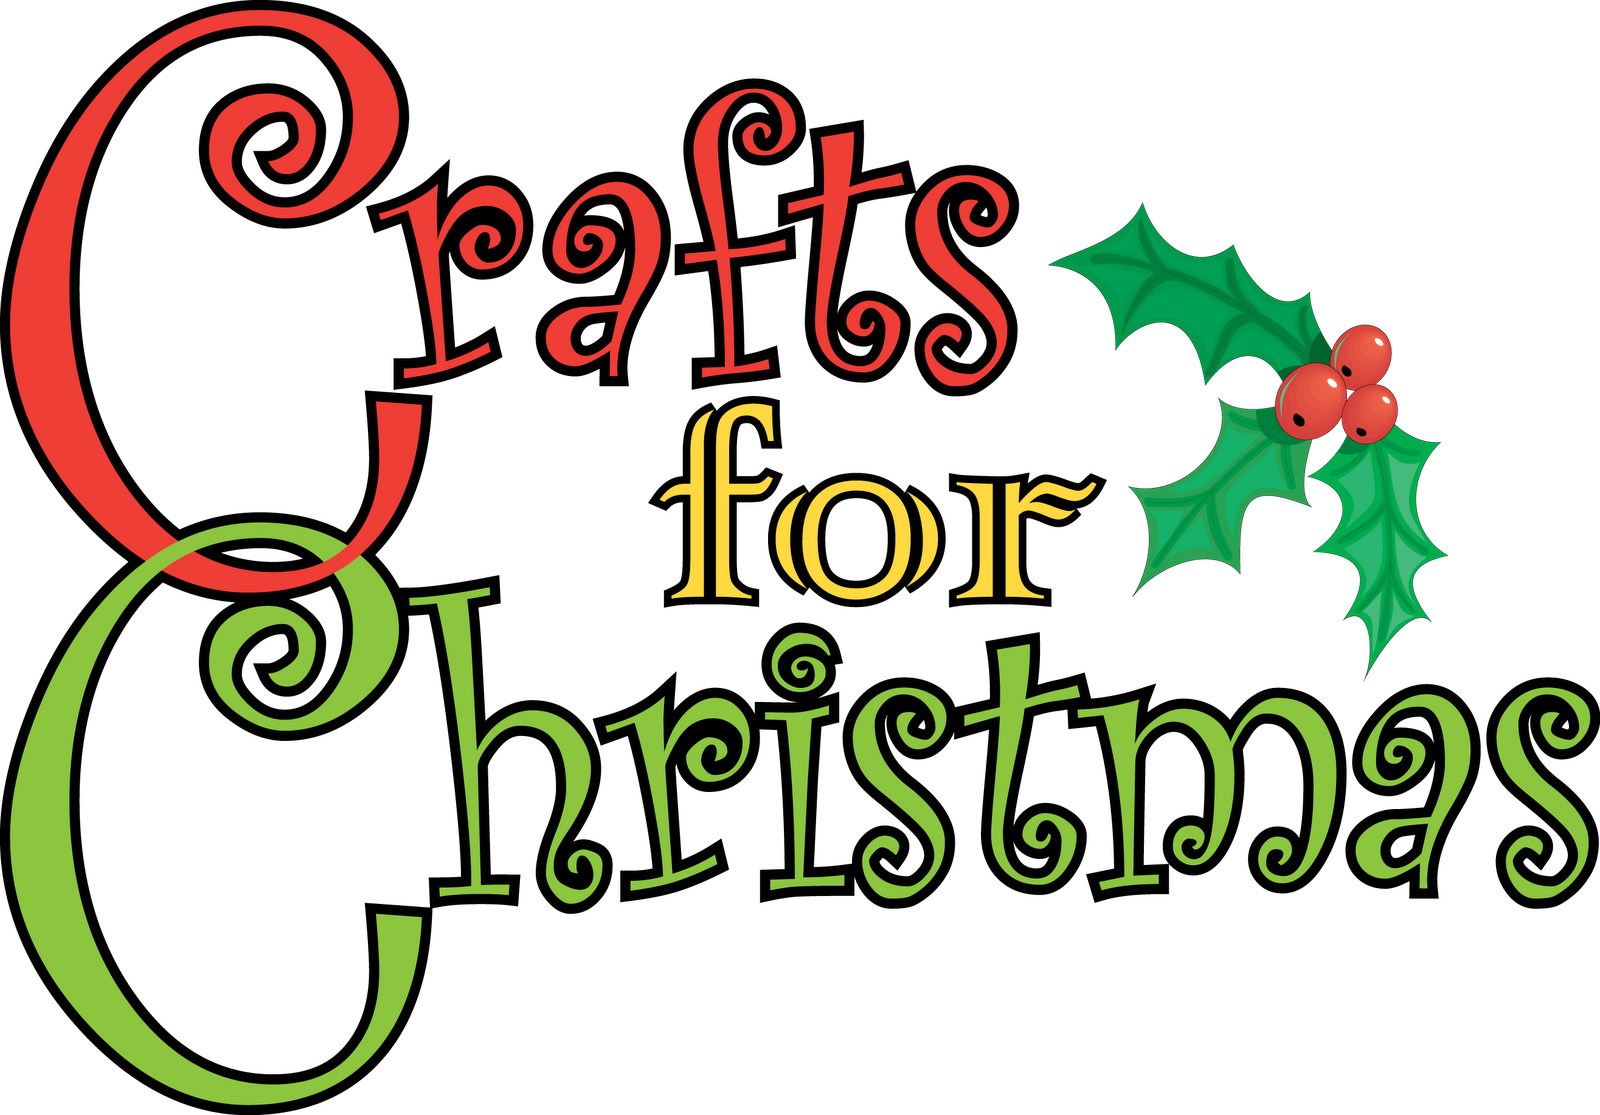 A Craft Fair will be held on Saturday the 23rd of November from 5pm to 9pm at Aras Ide, Kilmeedy. There will be a variety of different stalls all selling home produced products. They will be selling ideal Christmas gifts for your loved ones or a treat for yourself so come and join us and get in the Christmas spirit.